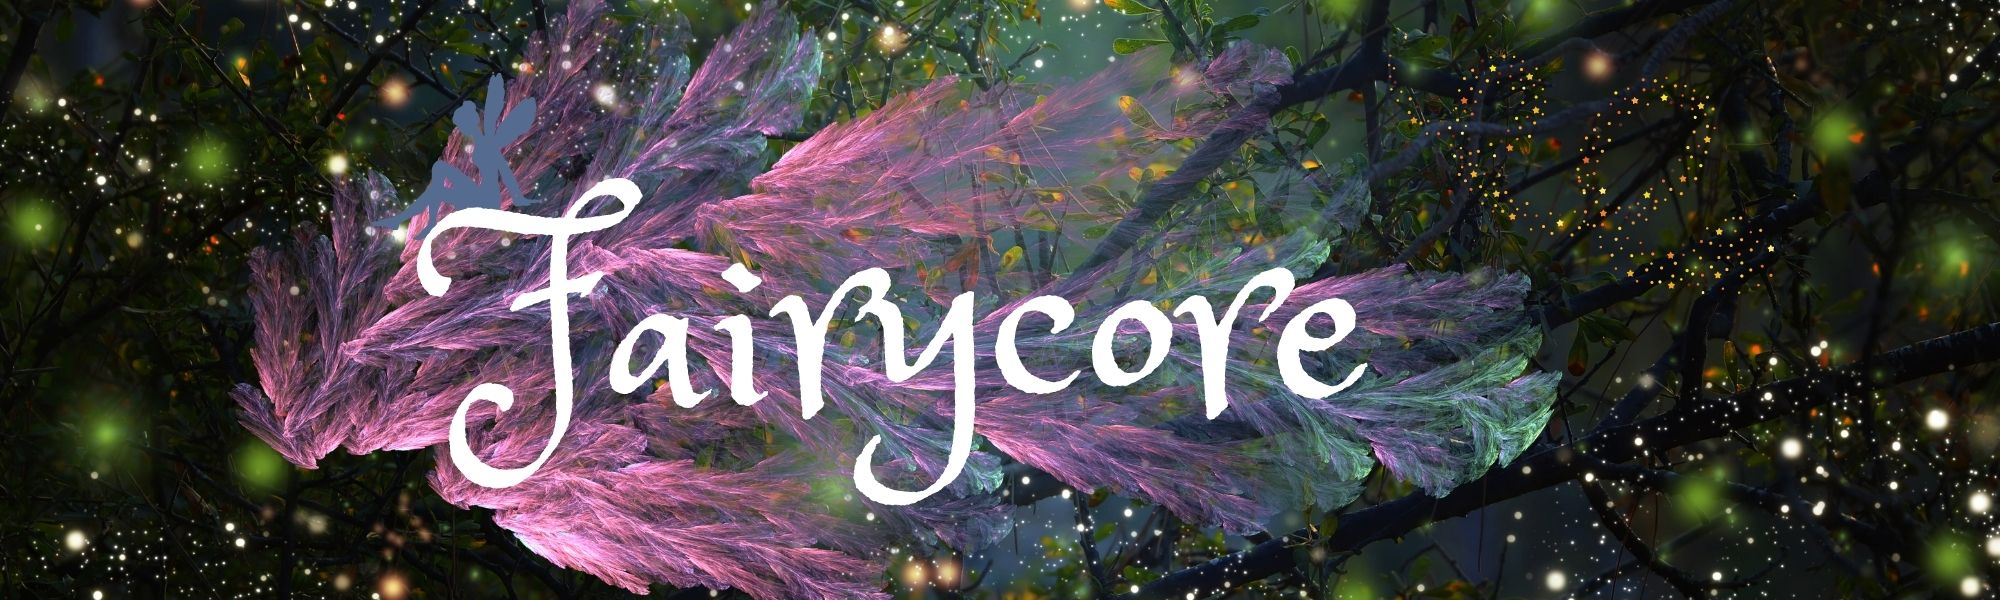 whimsical fairycore banner with forest background and fireflies, a feather and fairy